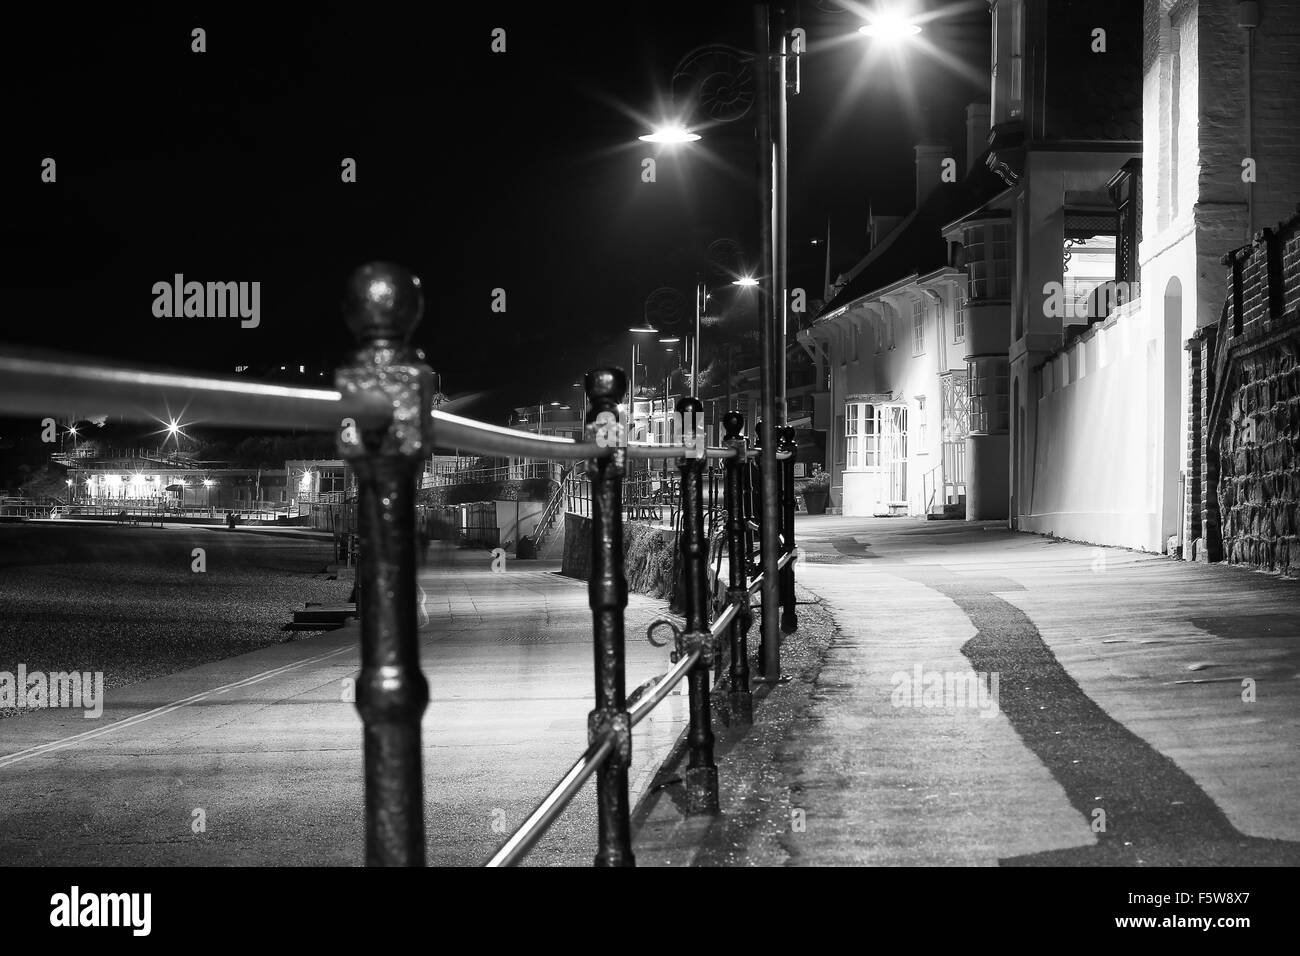 Seafront at night. - Stock Image